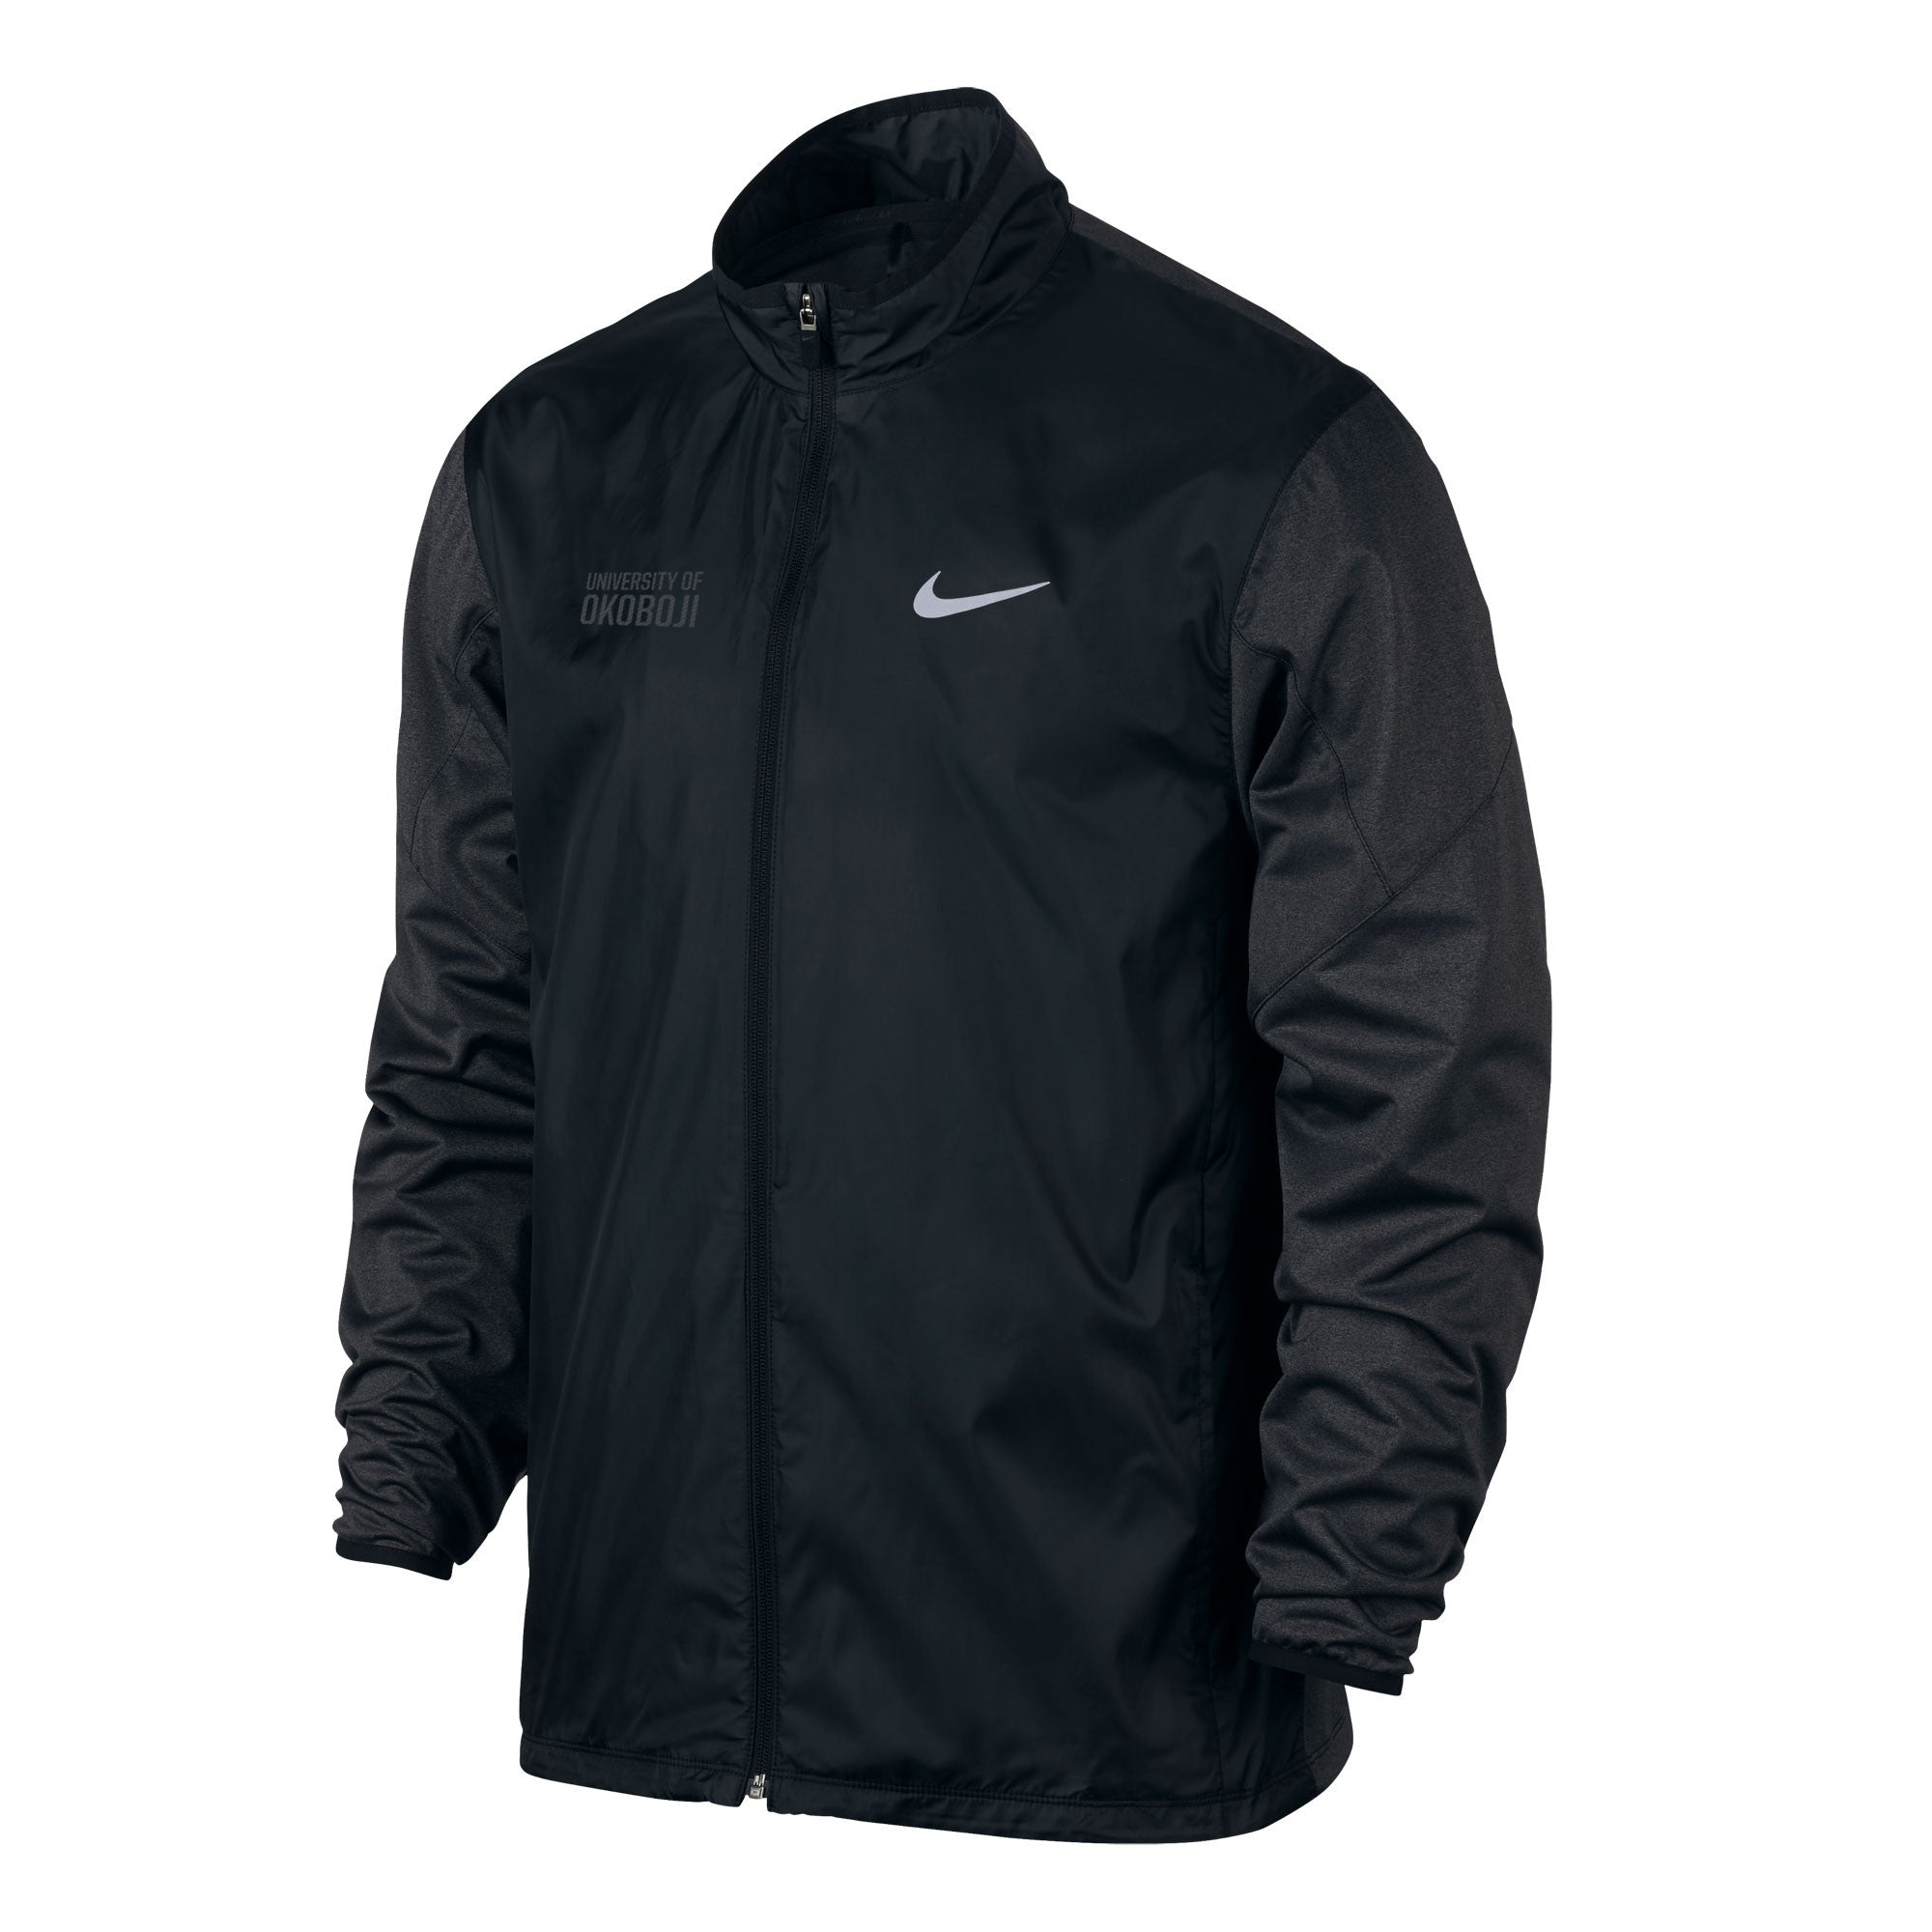 Nike Shield Full-Zip Golf Jacket - Black